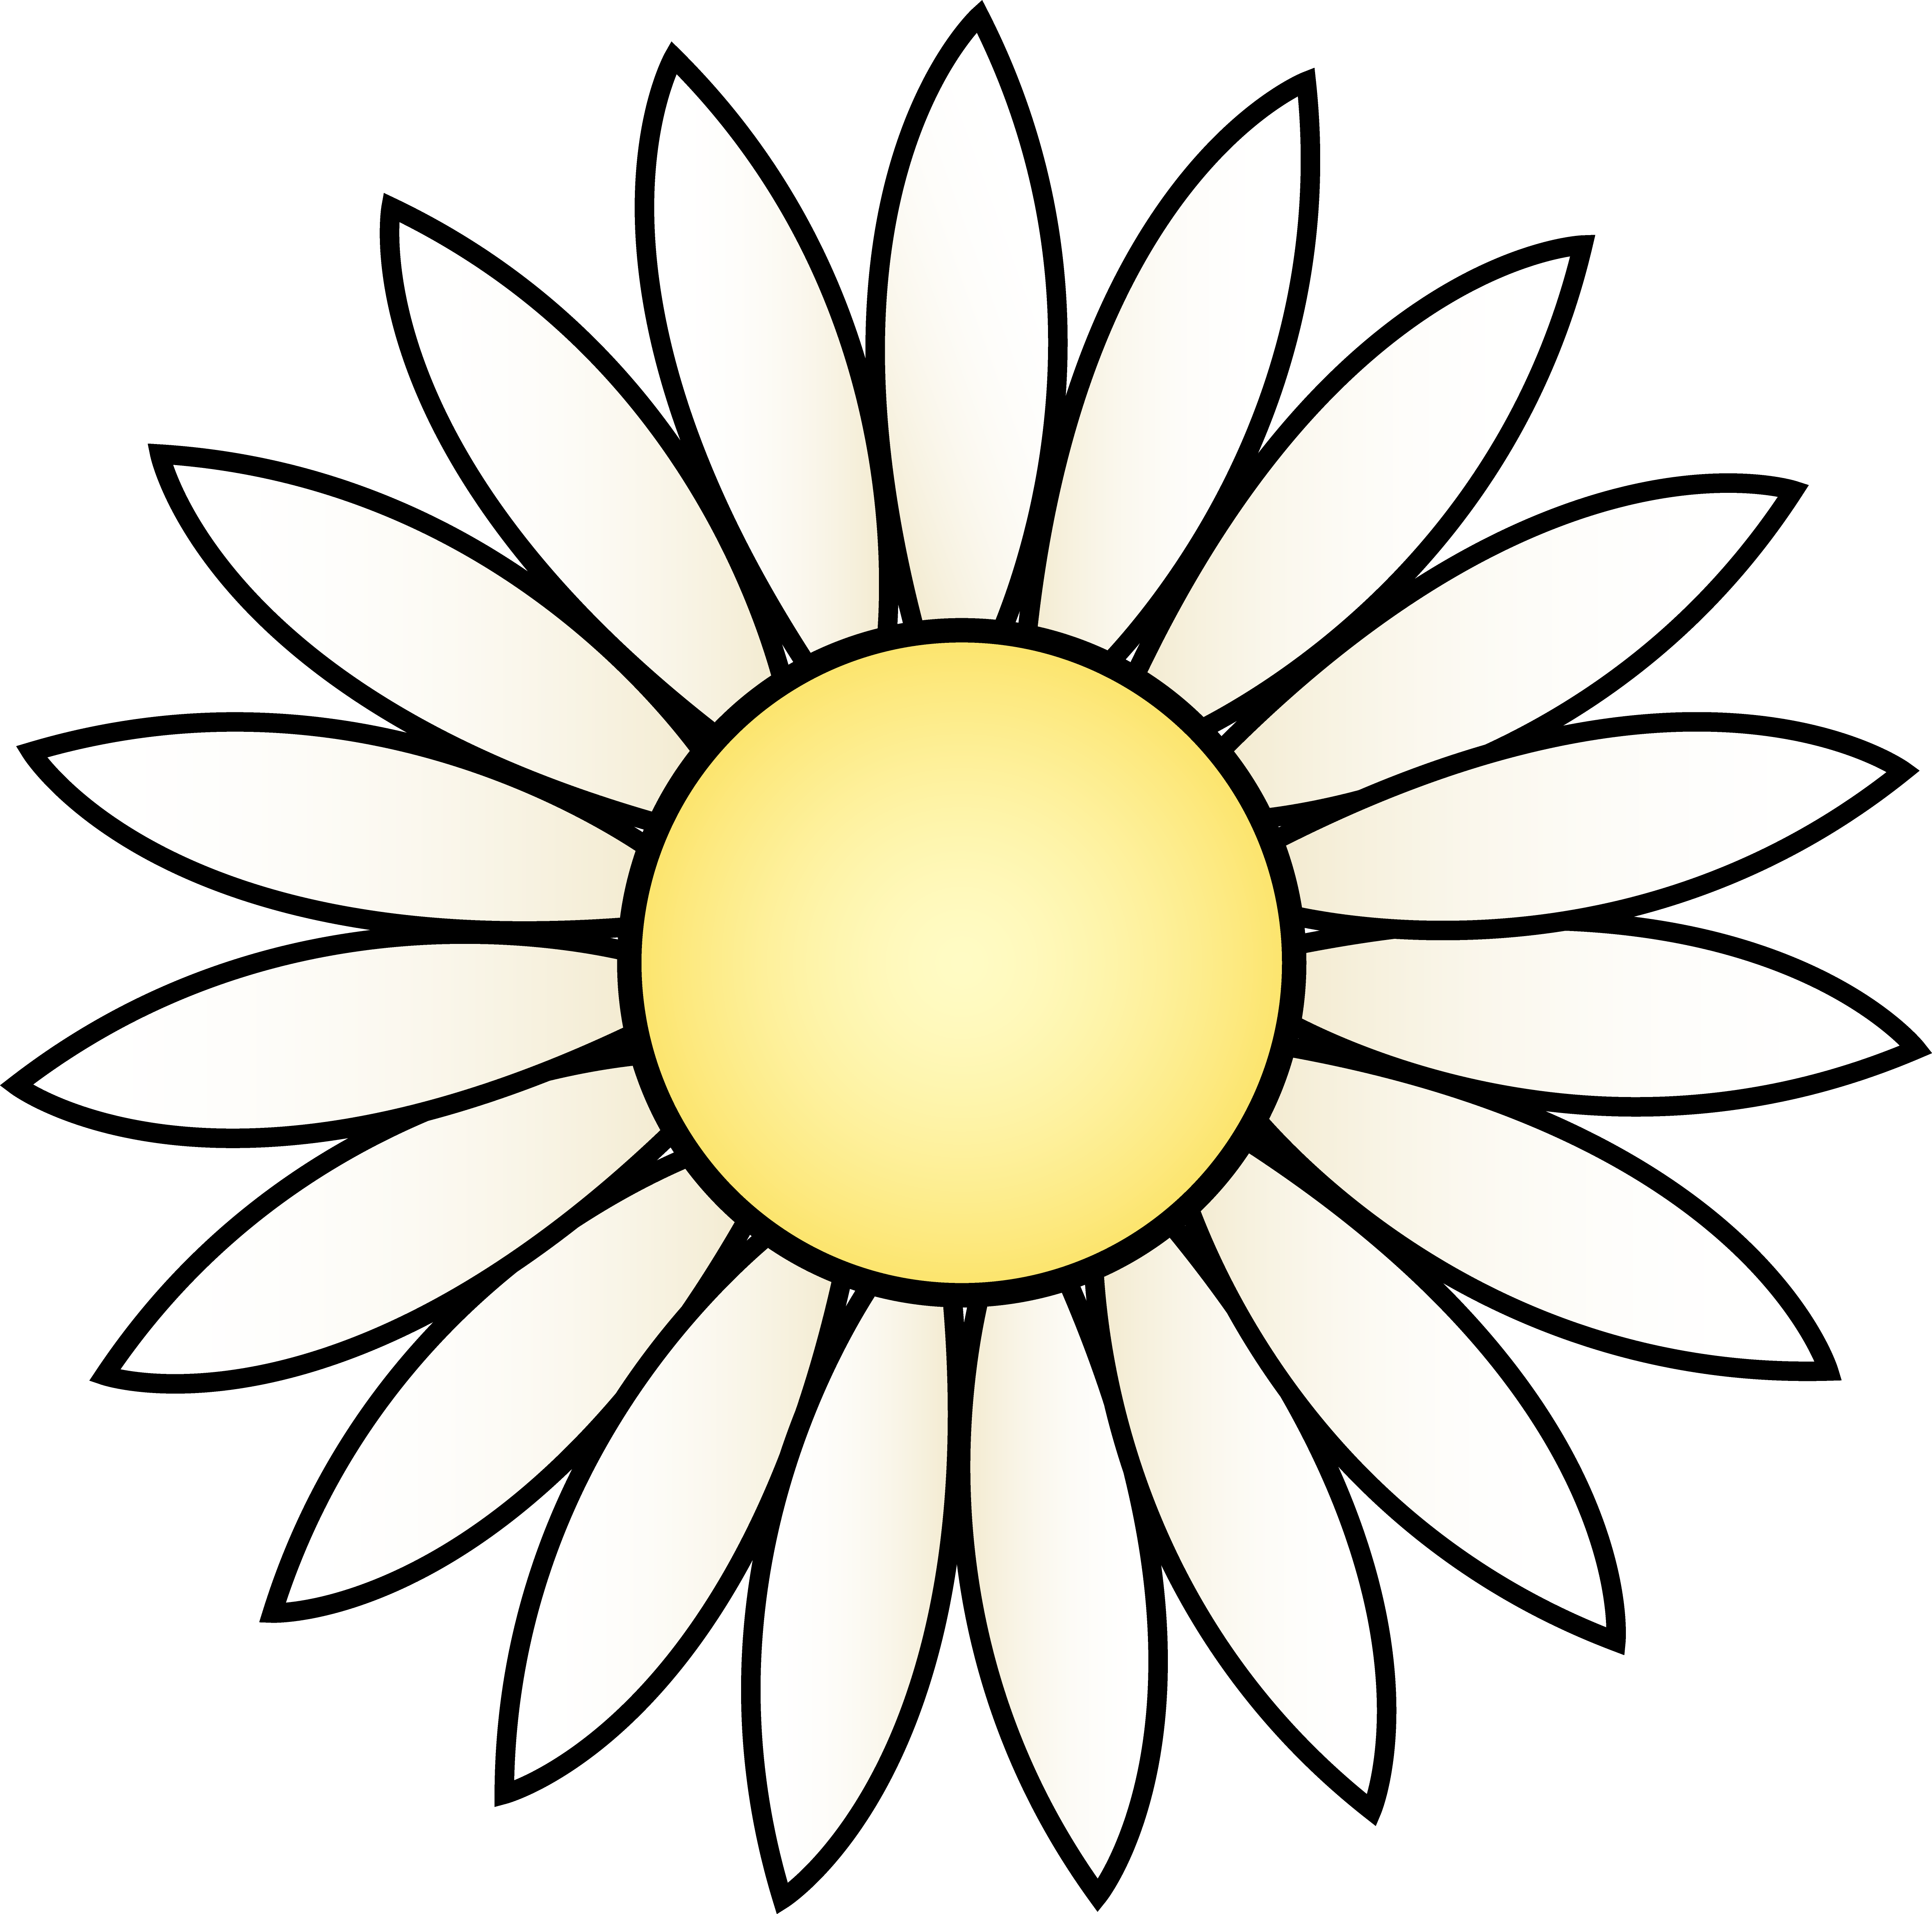 Daisy clip art free free clipart images 3